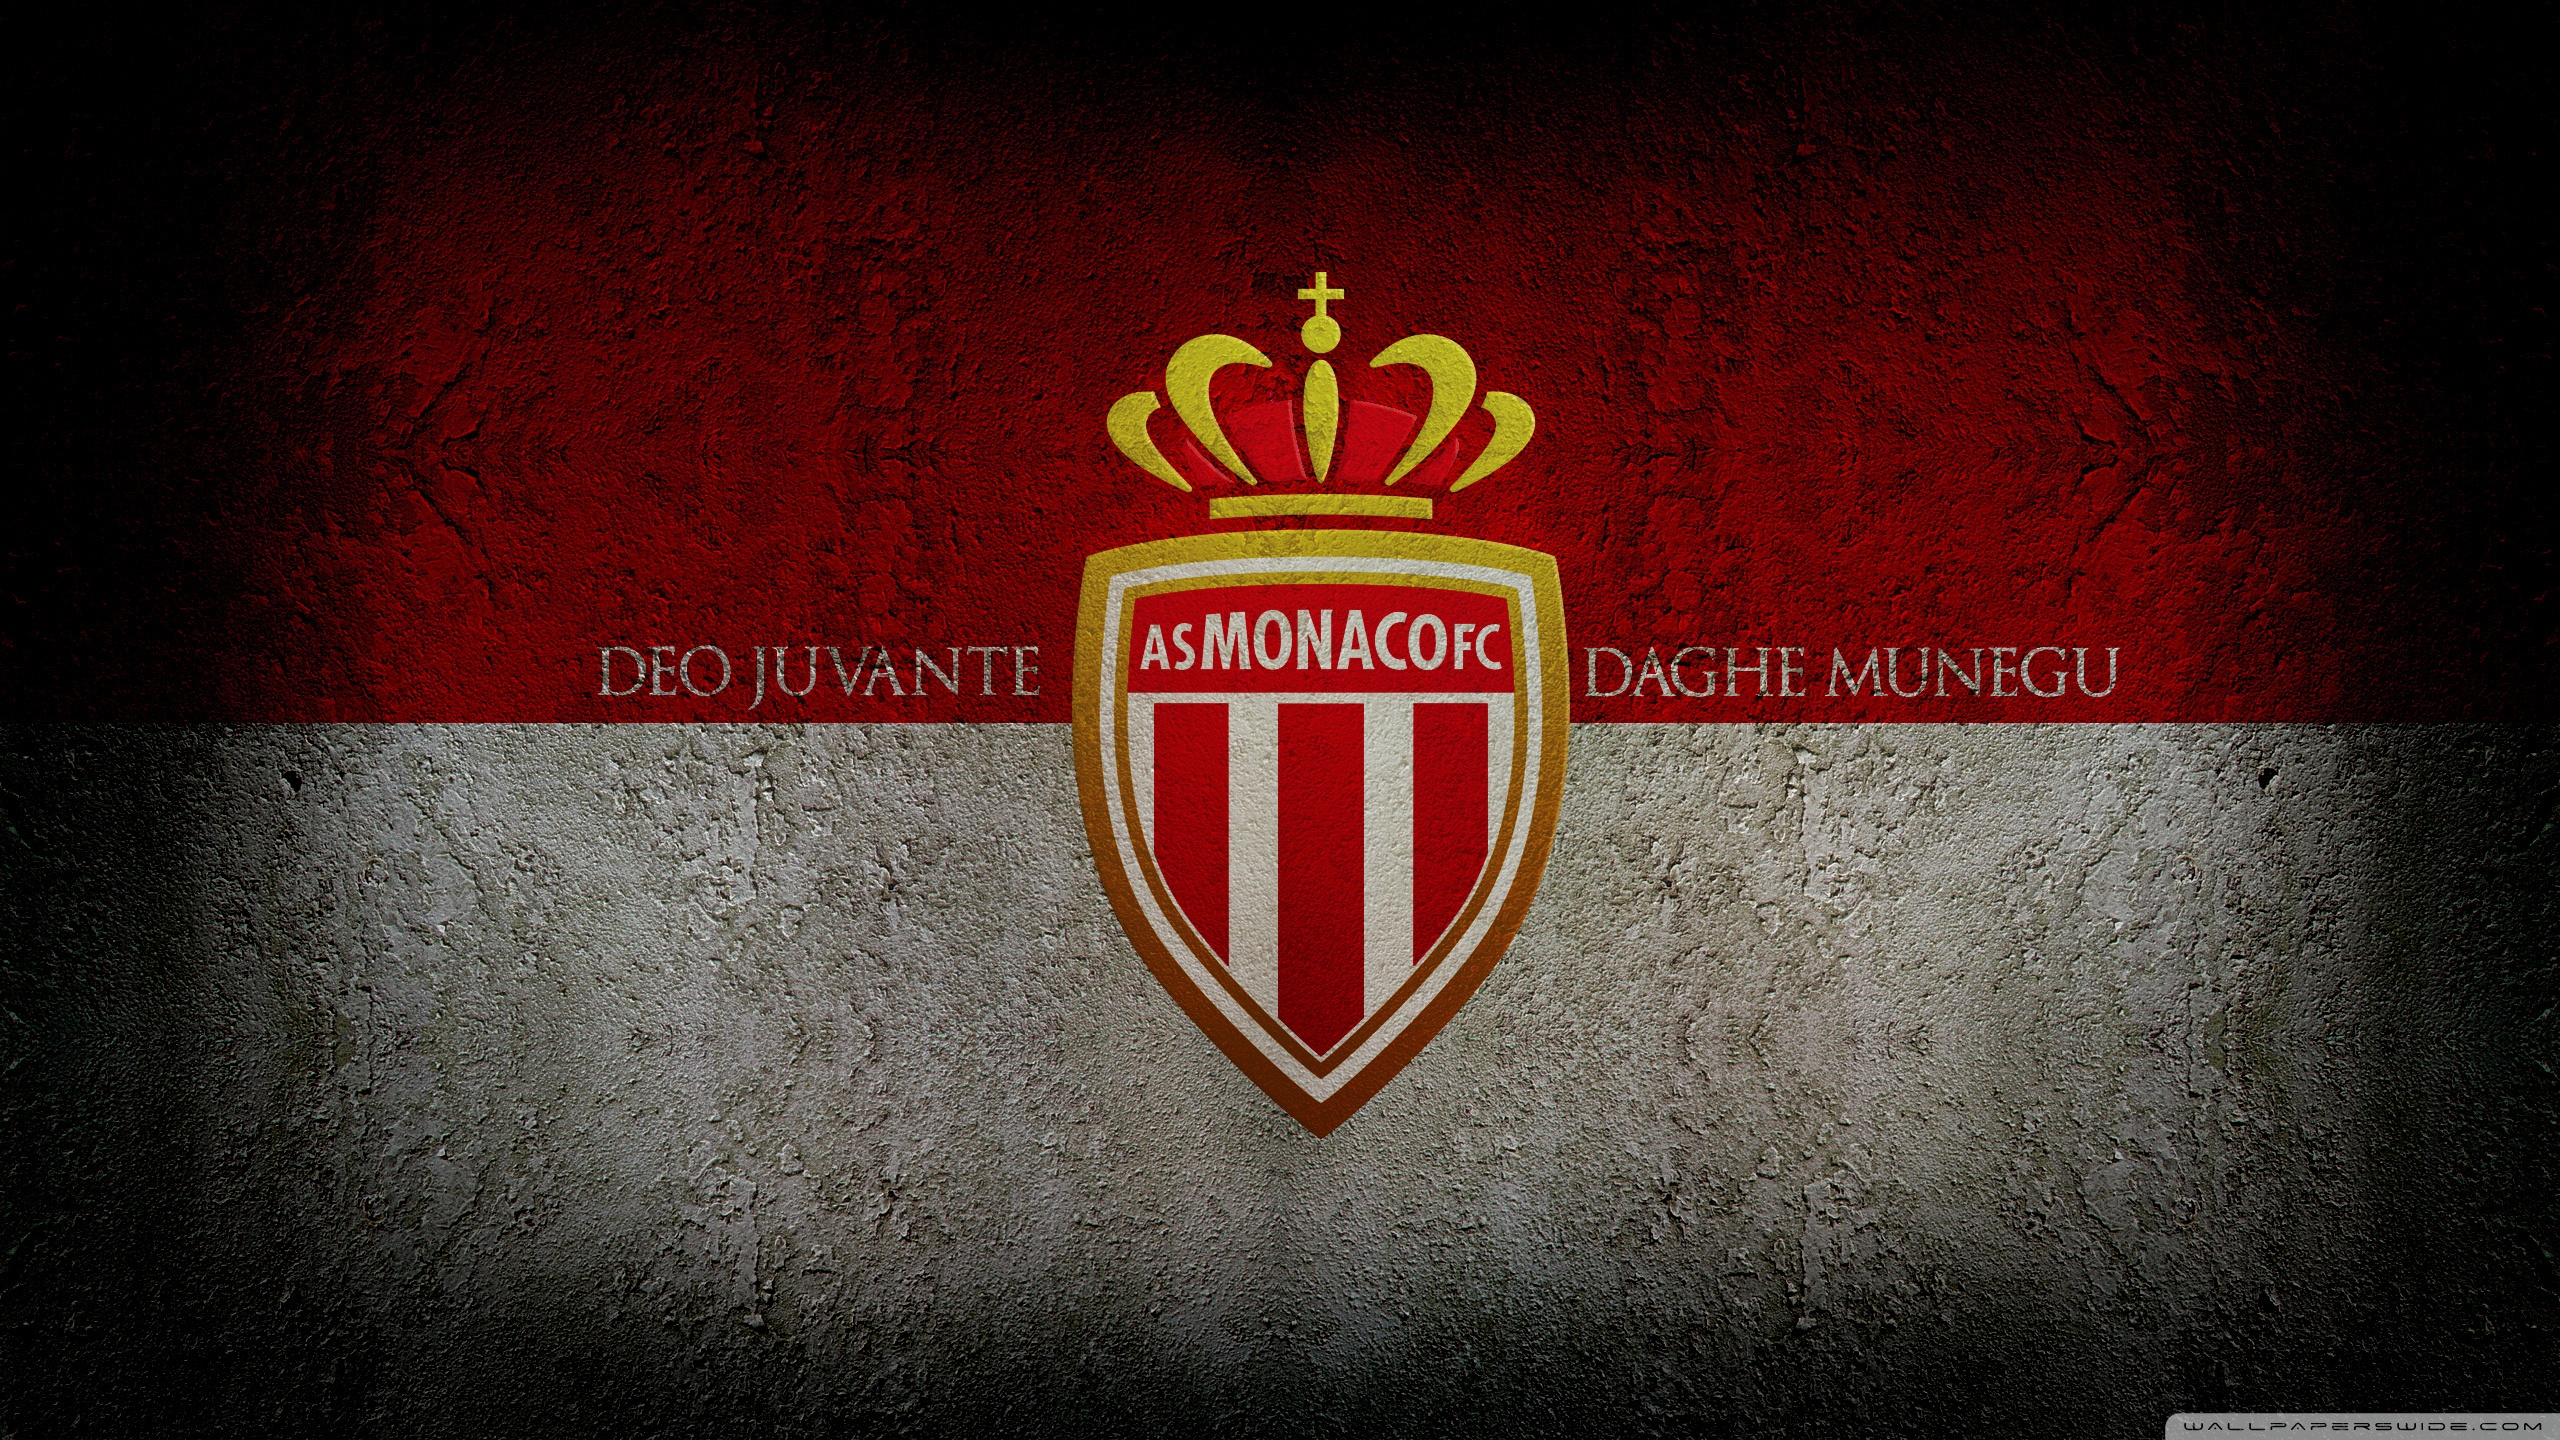 AS Monaco FC 4K HD Desktop Wallpaper for 4K Ultra HD TV Dual 2560x1440